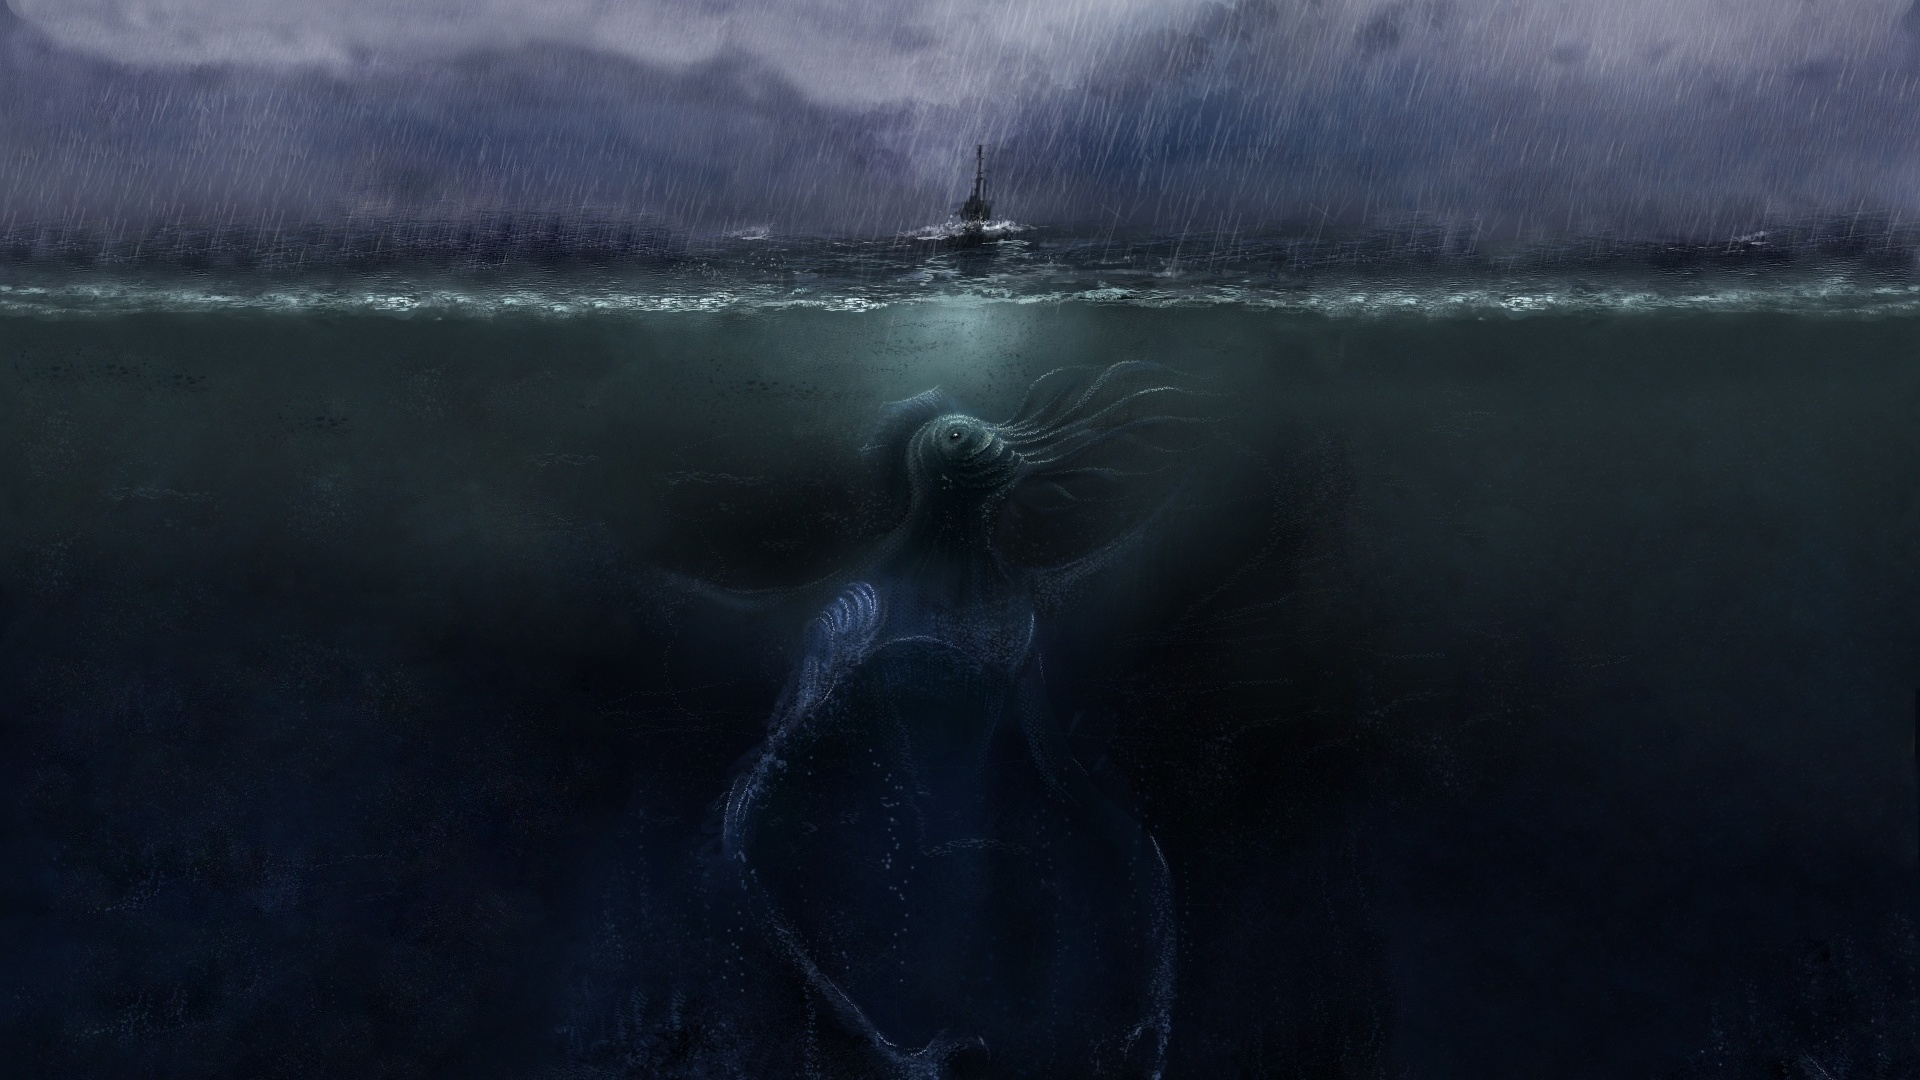 32331 Screensavers and Wallpapers Demons for phone. Download Fantasy, Sea, Demons pictures for free